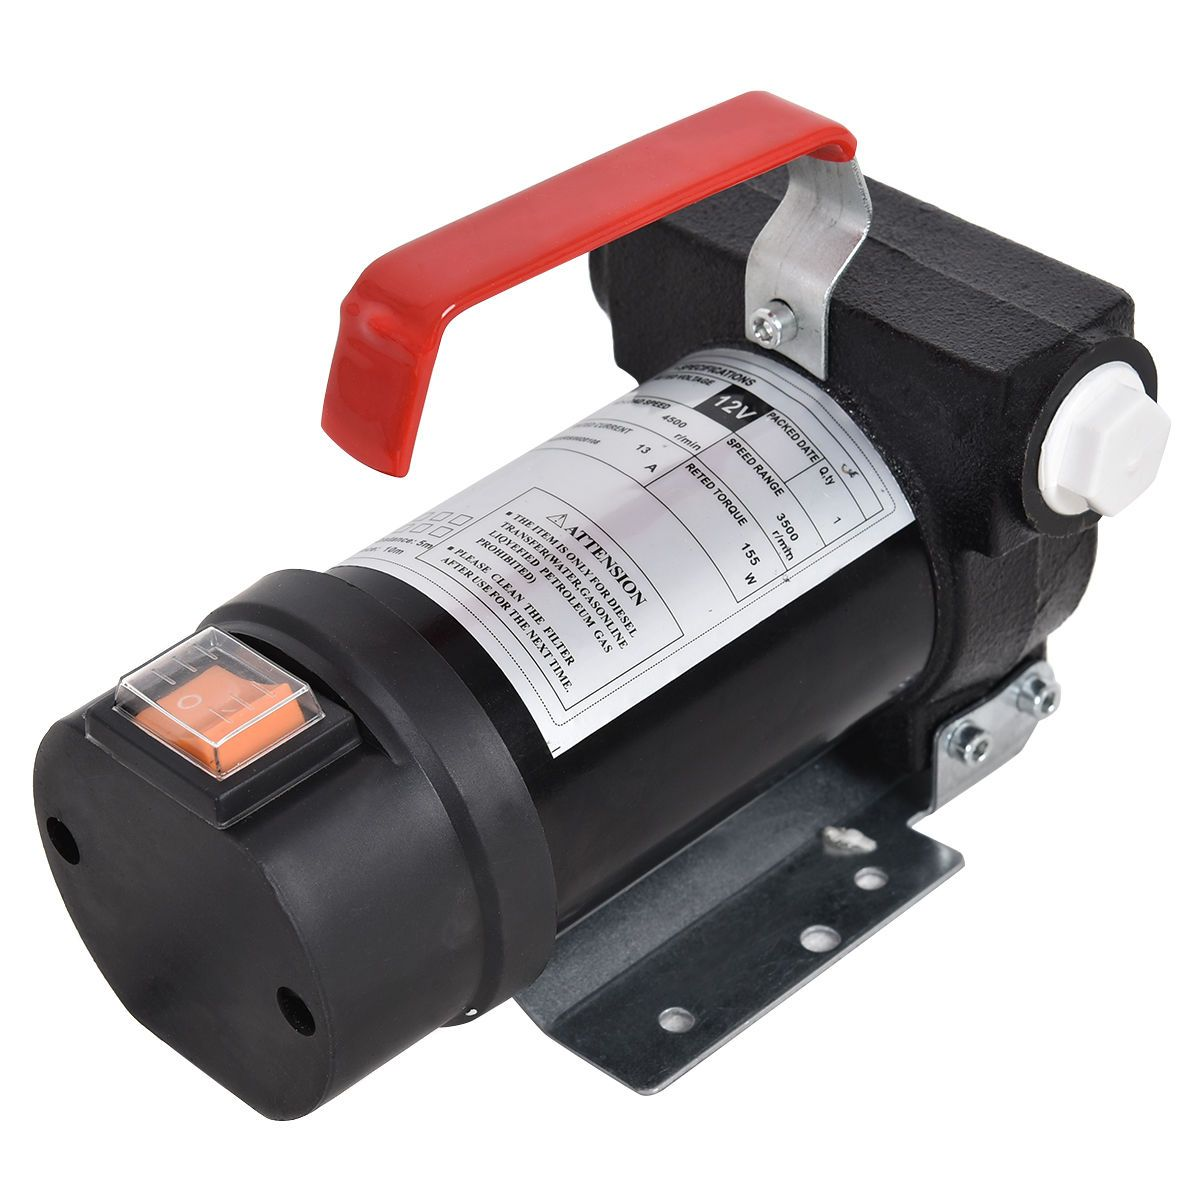 155 W Electric Diesel Oil and Fuel Transfer Extractor Pump